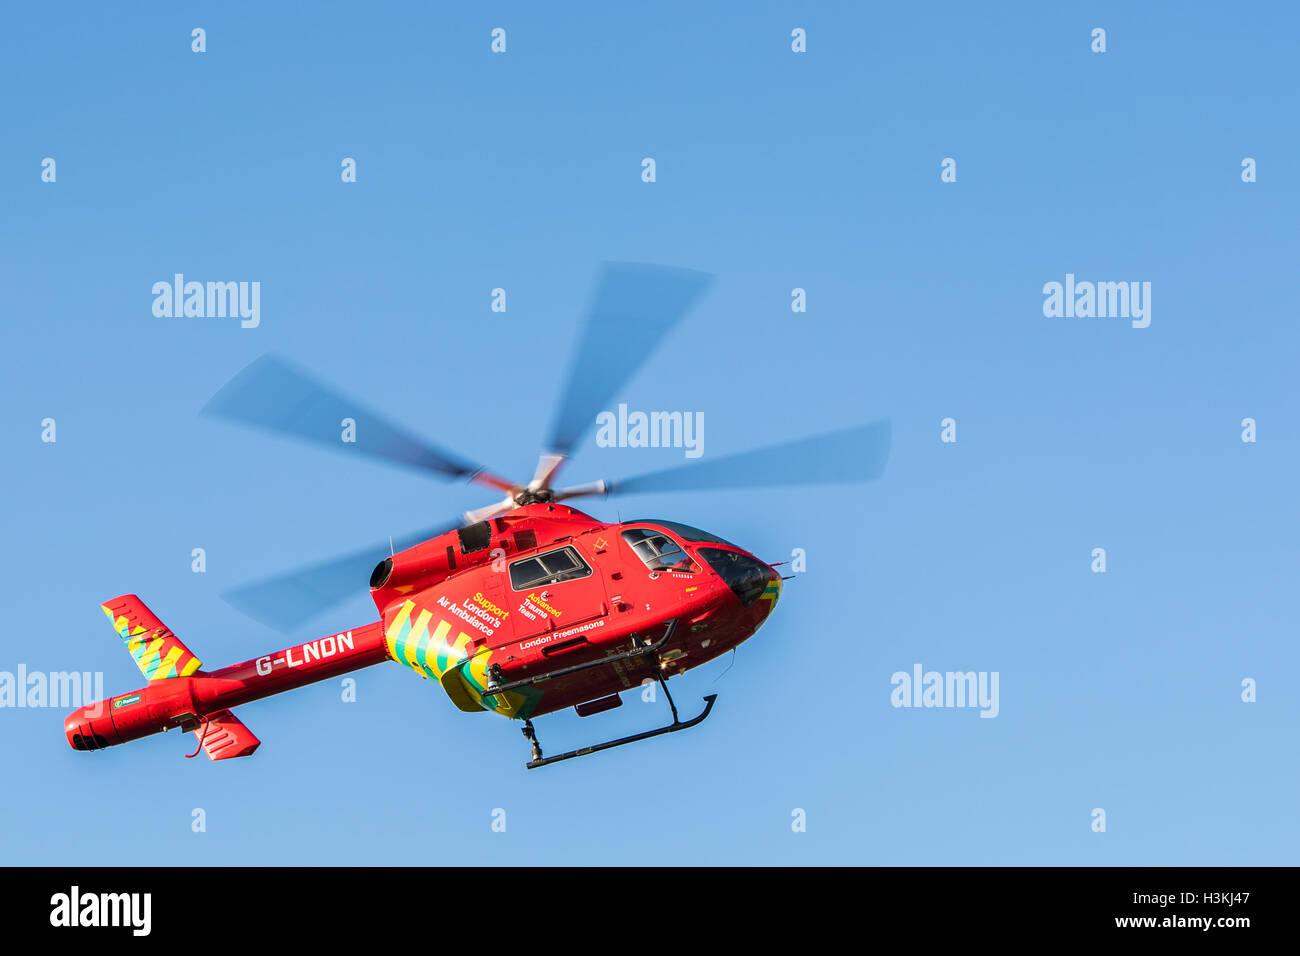 London Air Ambulance Helicopter attending an emergency in Shepherds Bush London UK - Stock Image